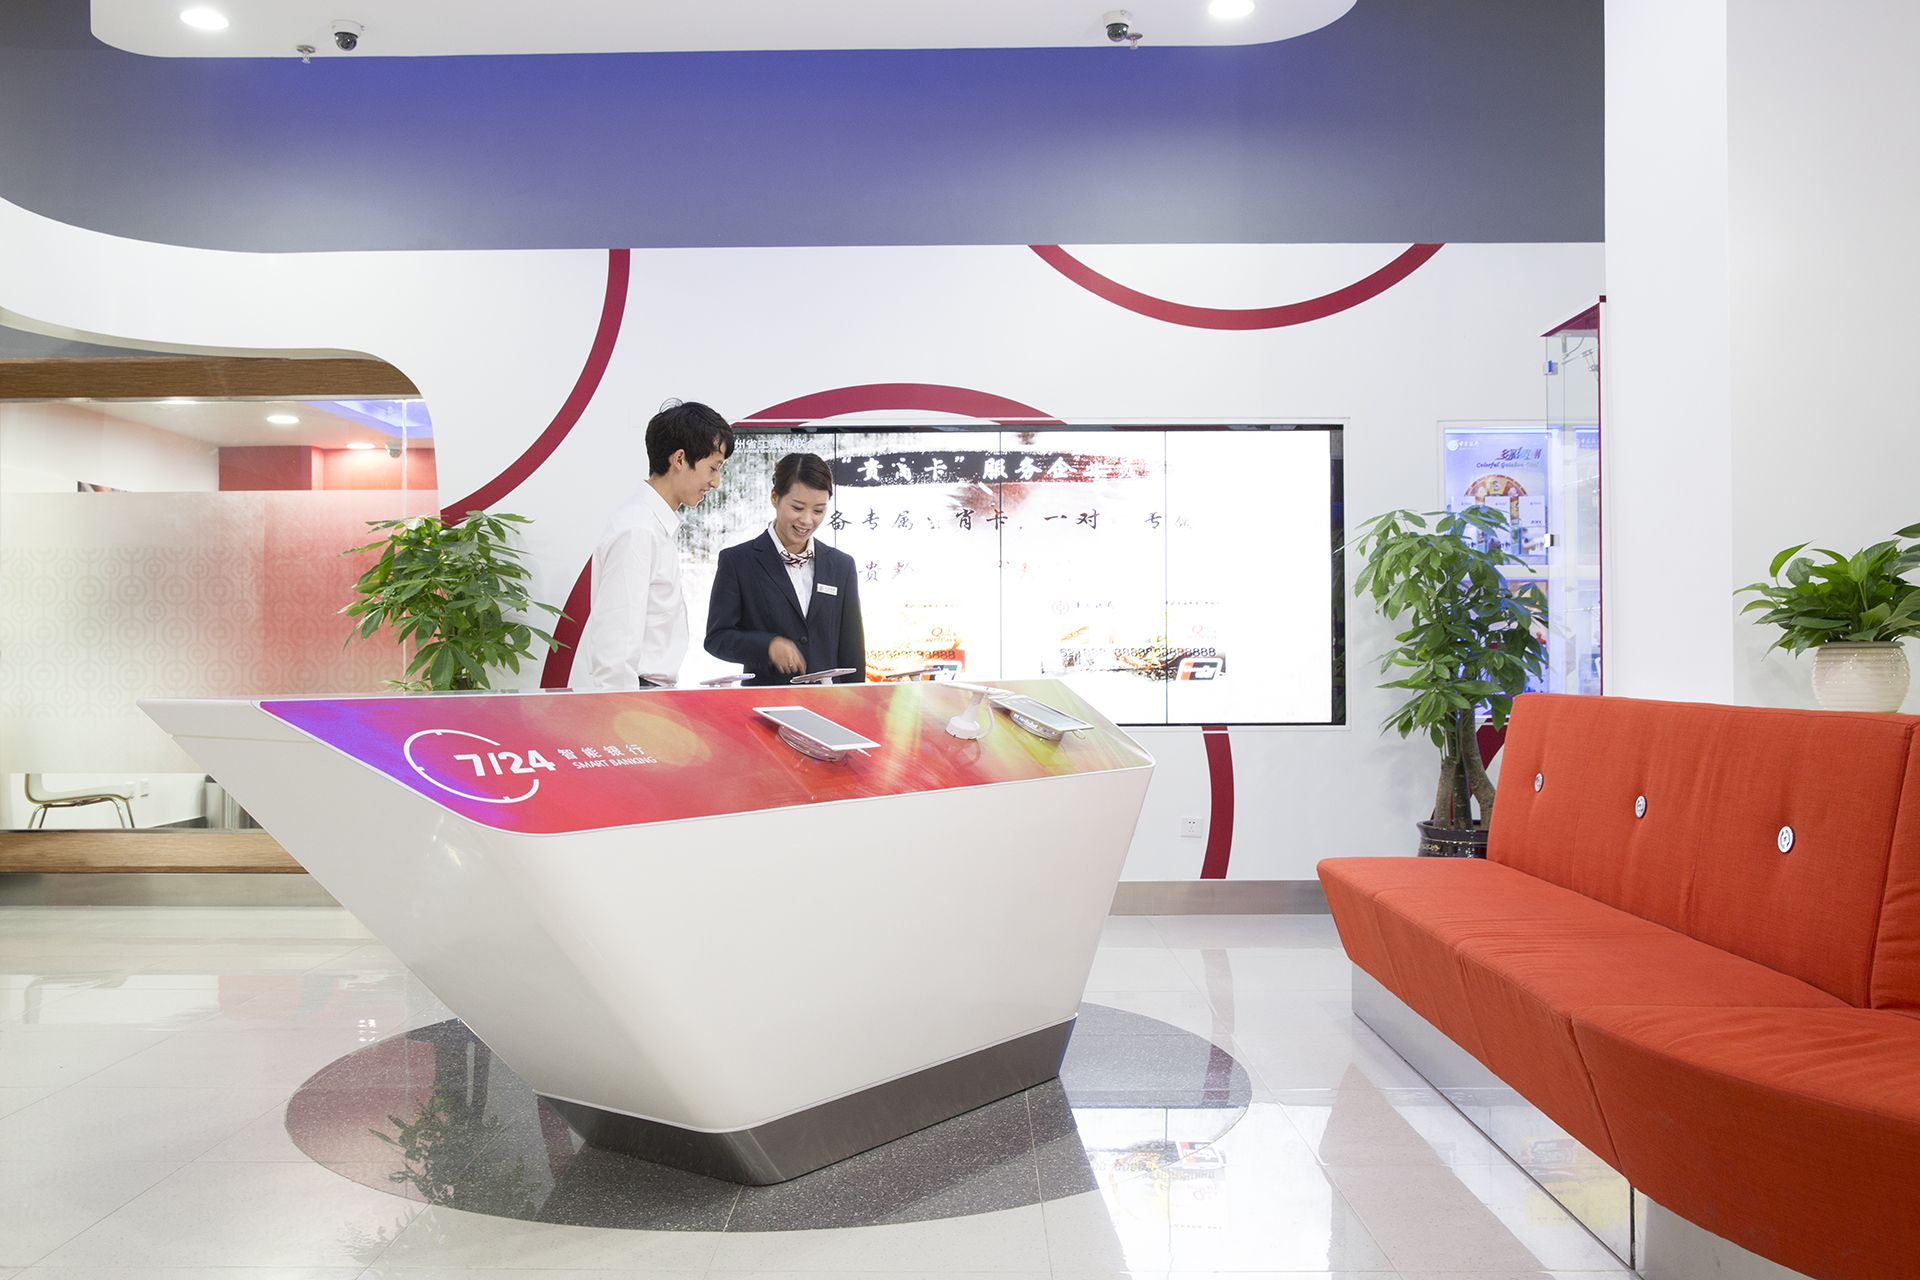 Bank of China First customercentric branch! One of the